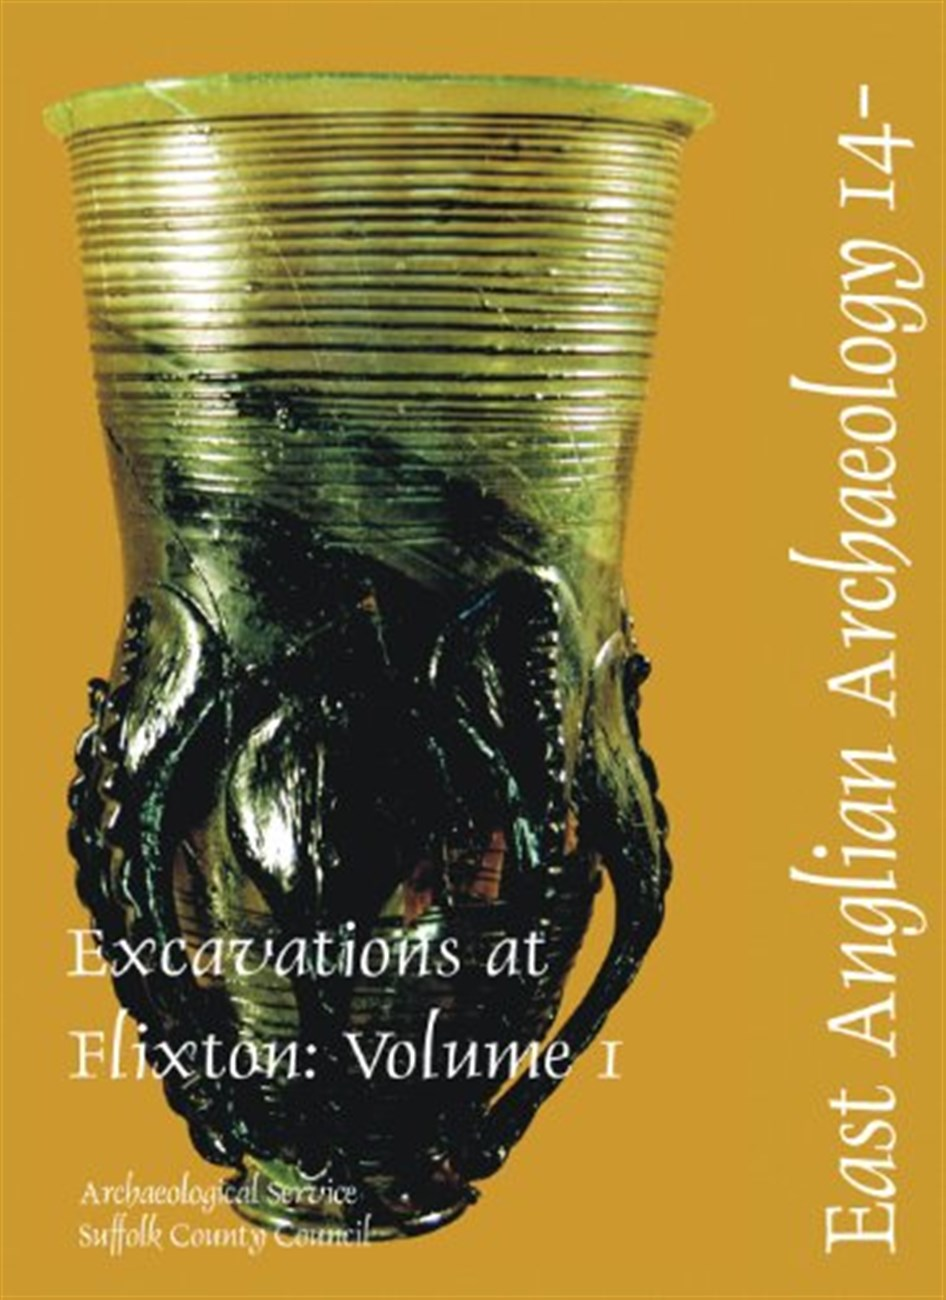 EAA 147 Circles and Cemeteries: Excavations at Flixton, Volume 1